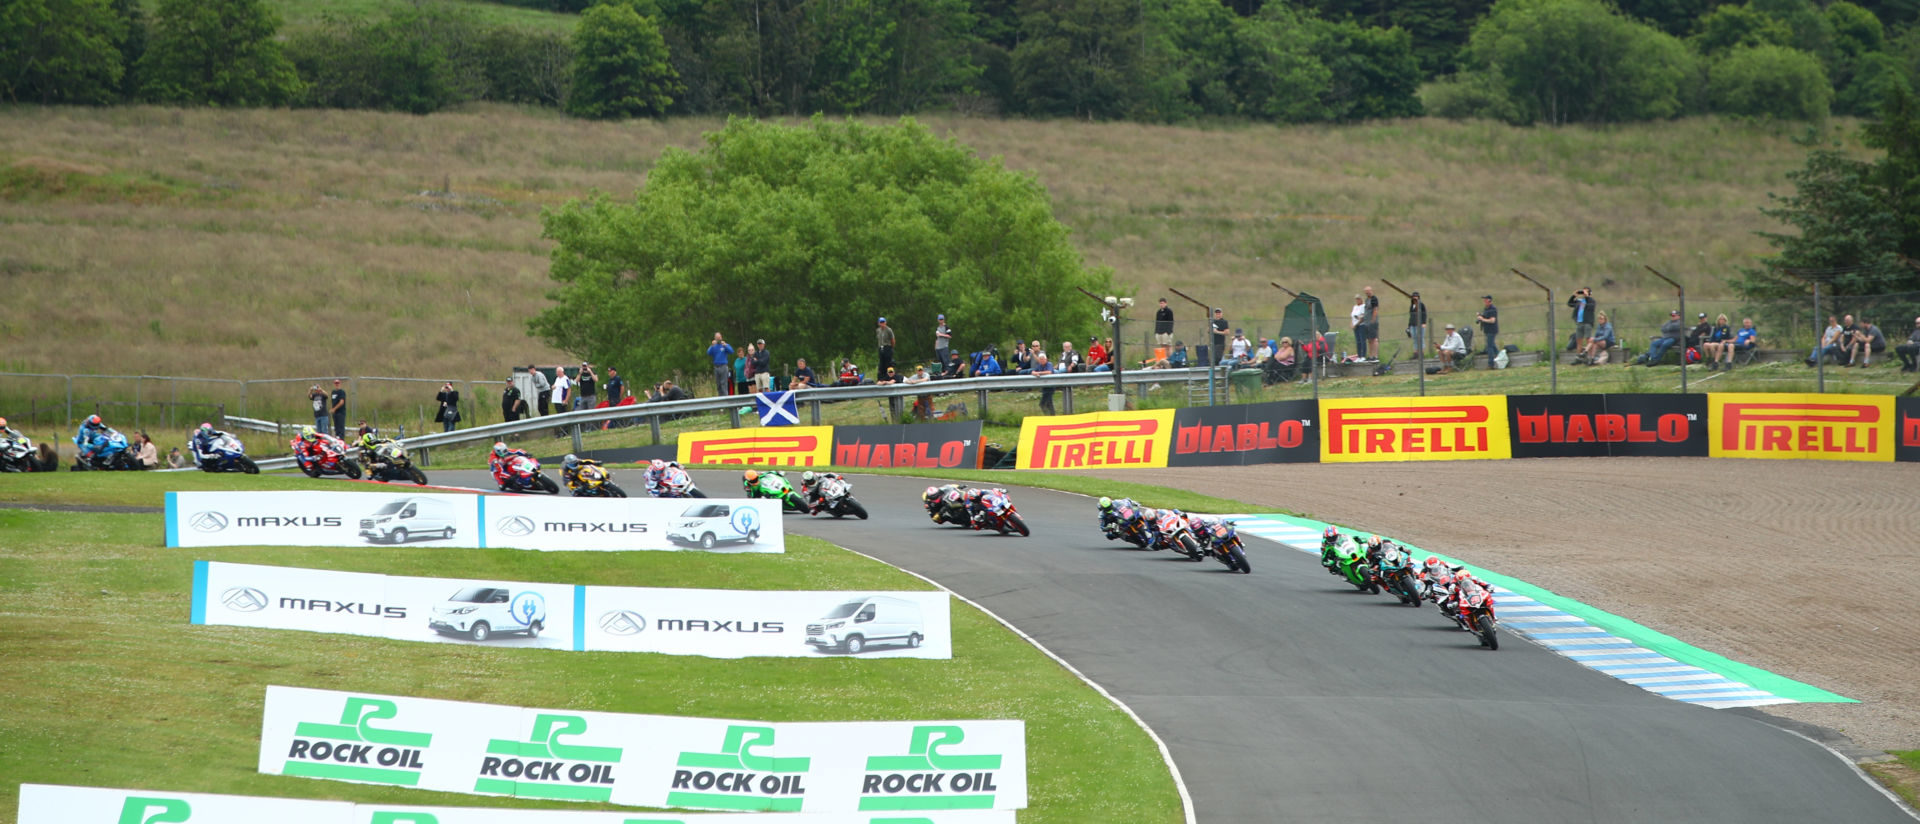 The start of British Superbike Race Two at Knockhill Circuit, in Scotland. Photo courtesy MotorSport Vision Racing.